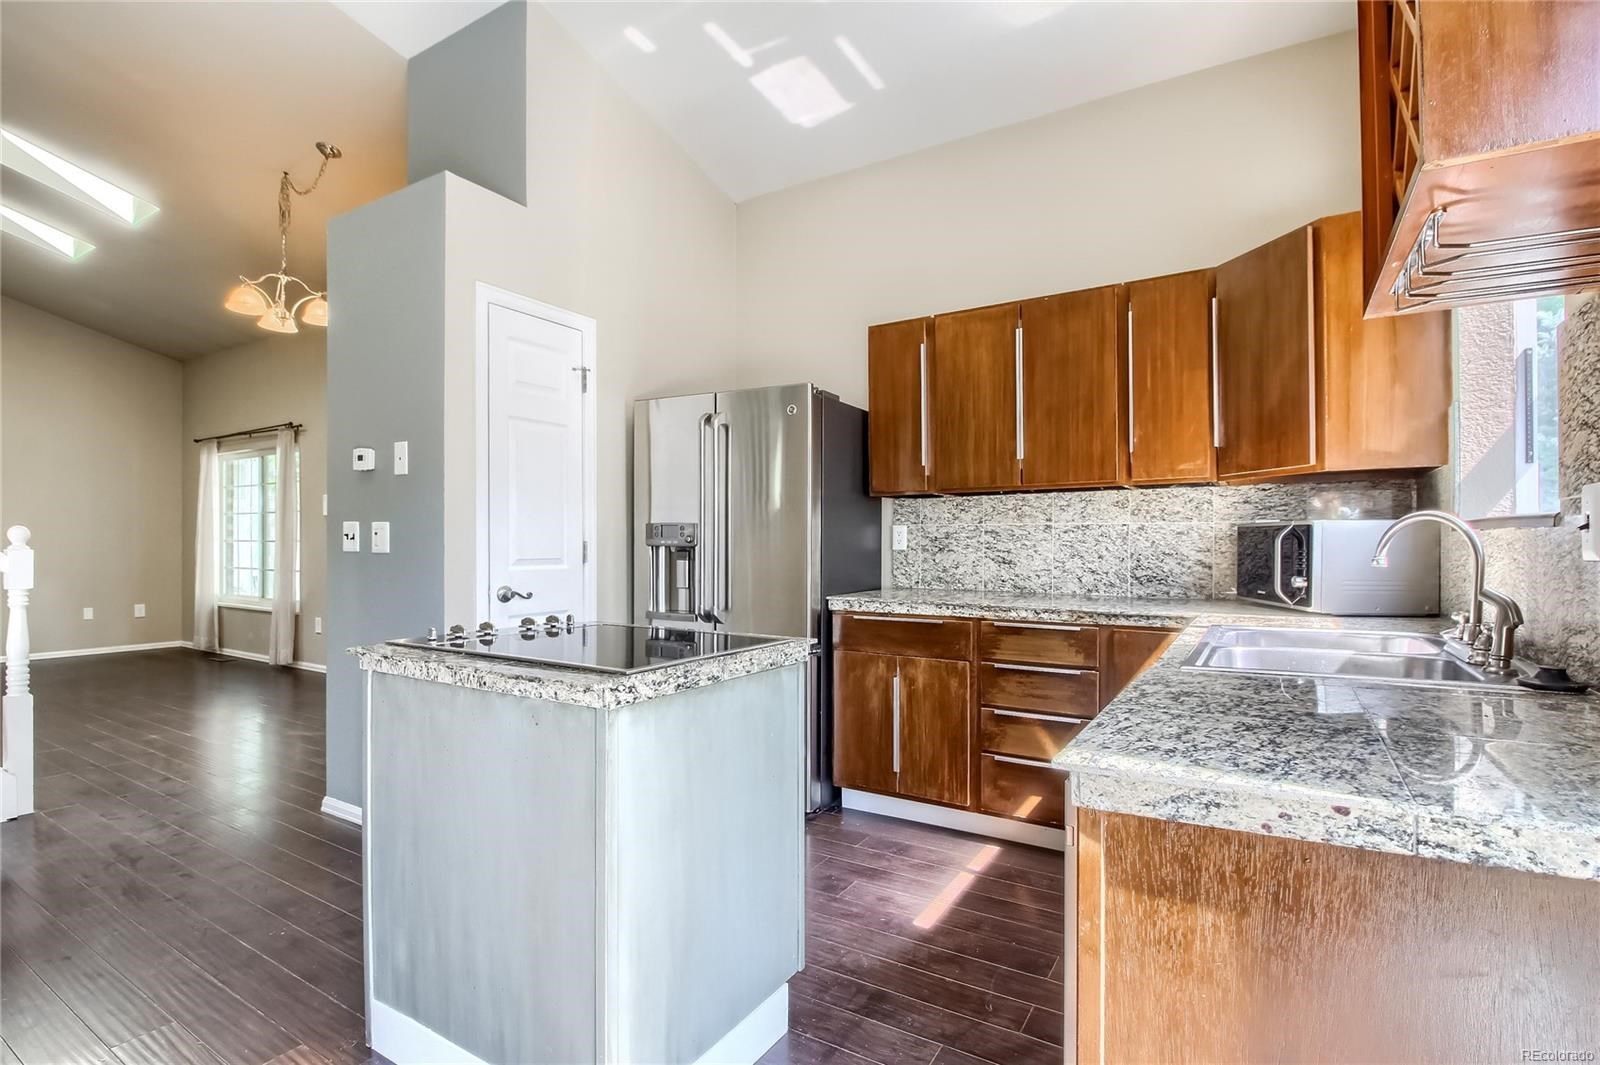 MLS# 2004721 - 6 - 6744 Amherst Court, Highlands Ranch, CO 80130